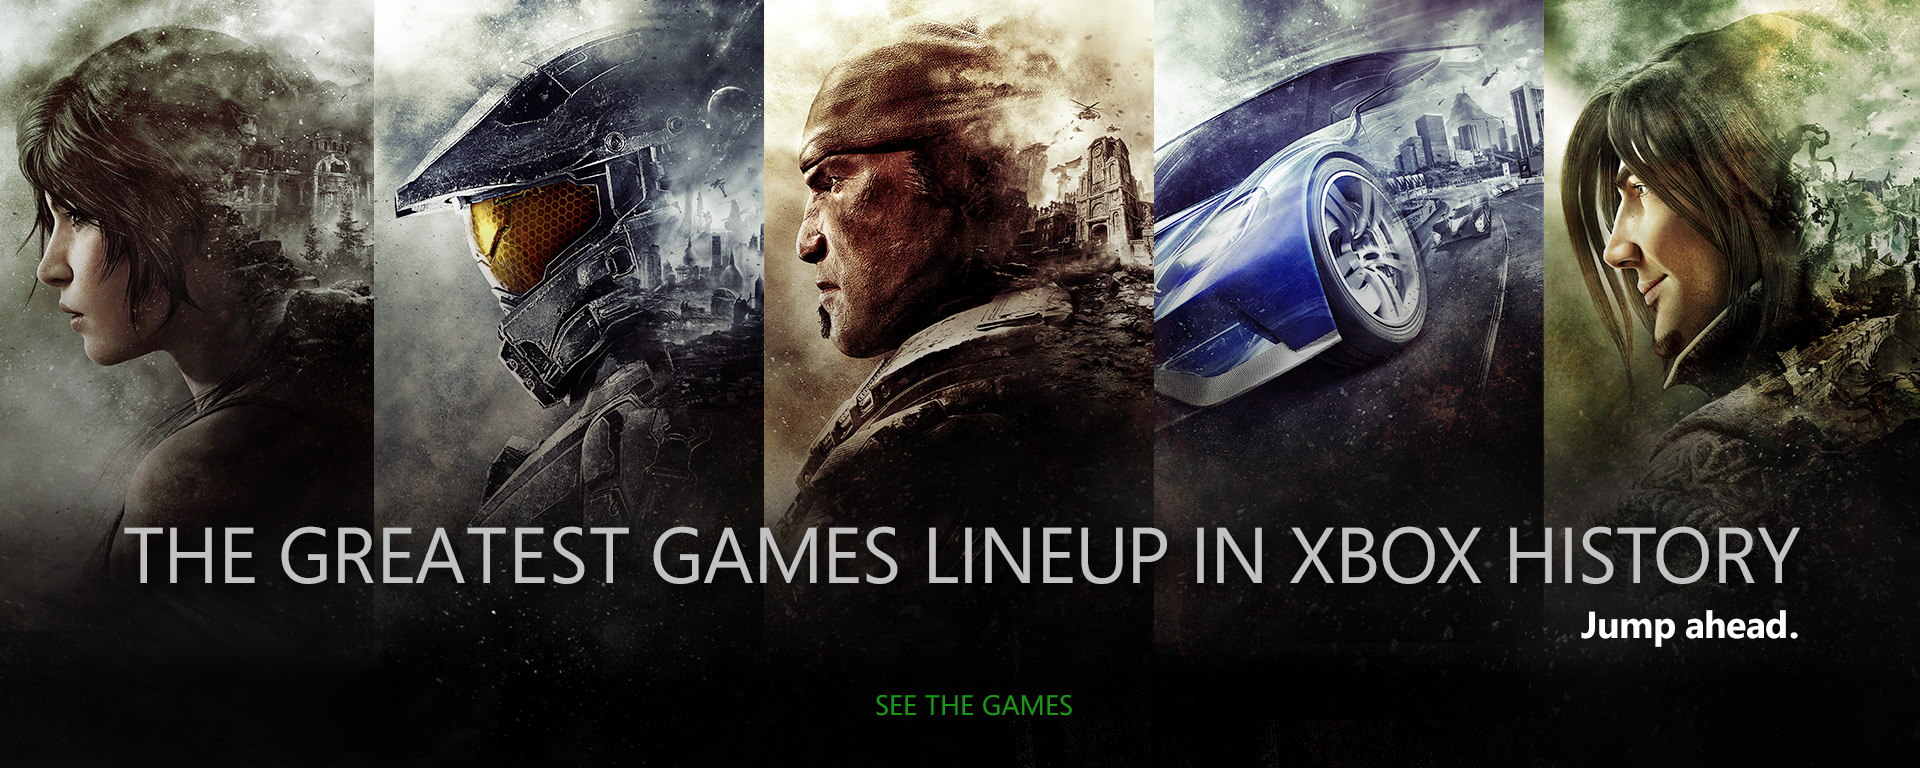 best games to download on xbox one